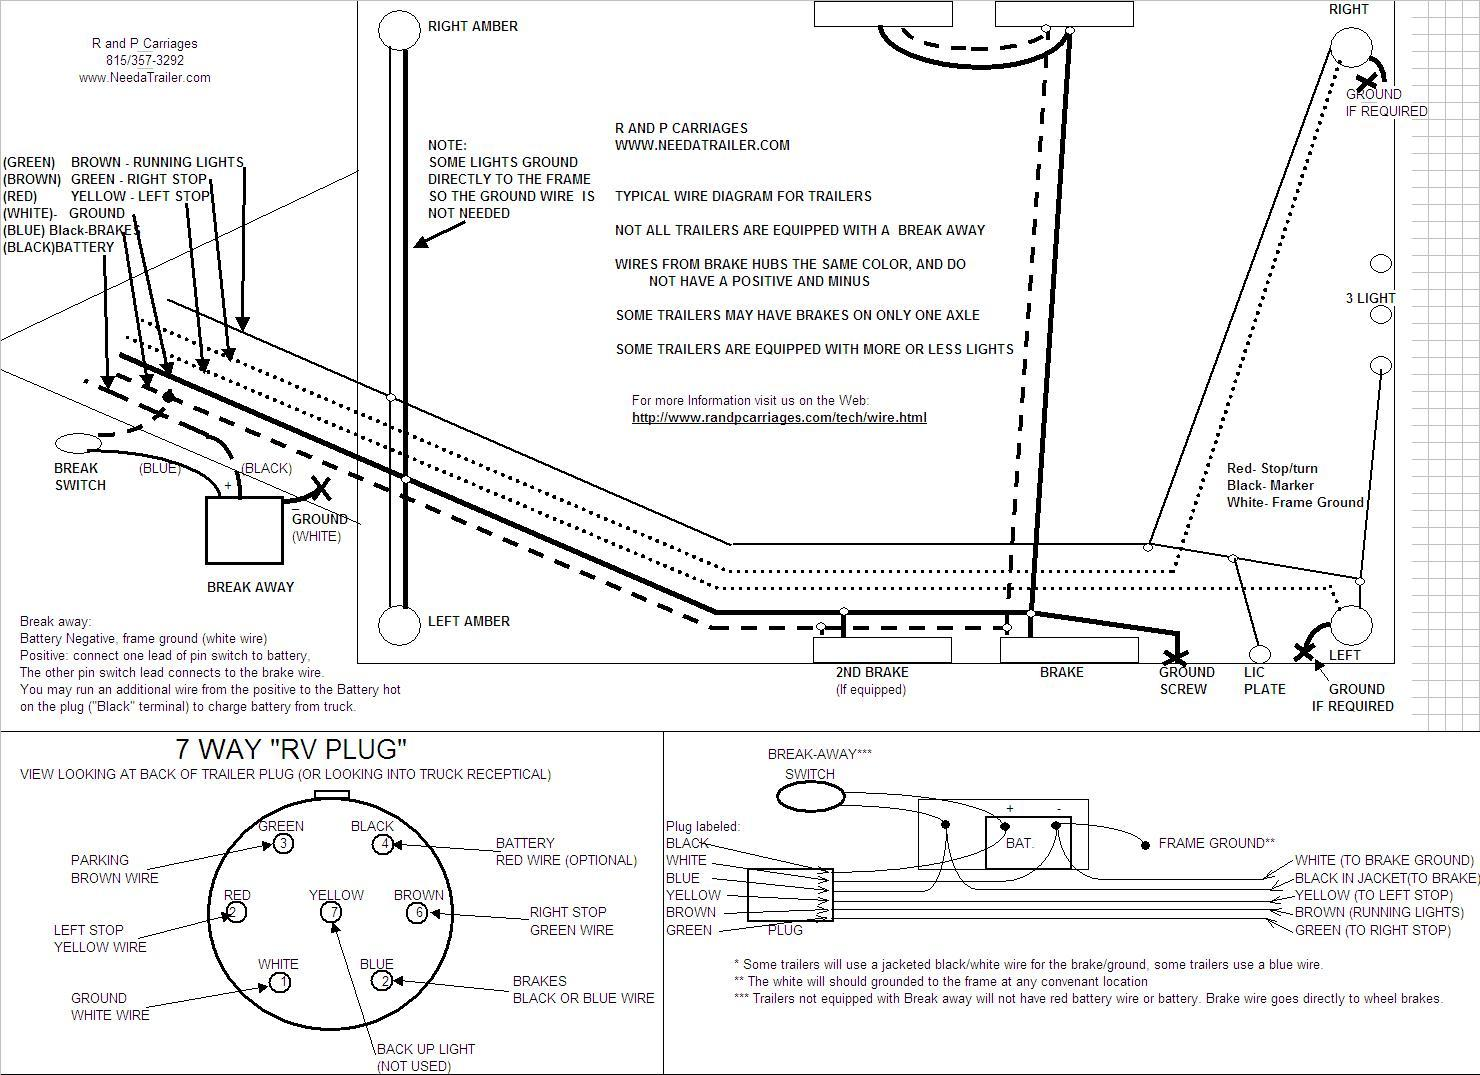 r and p carriages trailers, parts, service, and rentals Trailer Harness Diagram